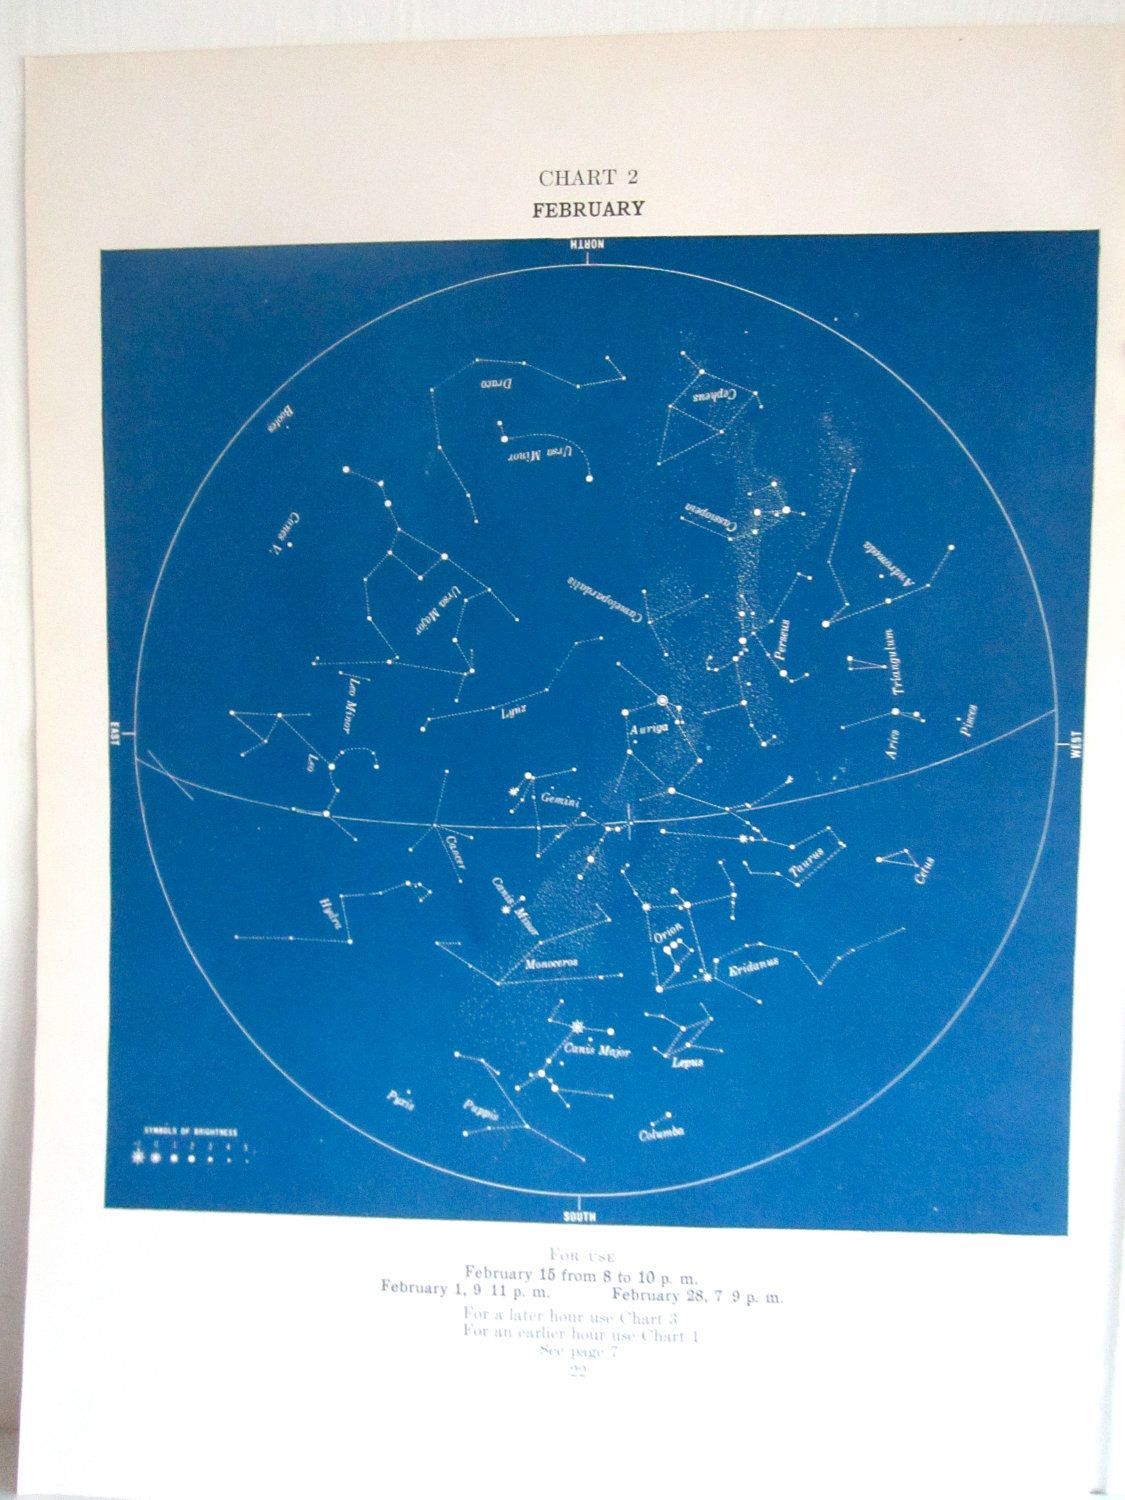 February Constellations Star Chart Blue Print Birthday Gift To Frame Space Theme Childs Bedroom 1000 Via Etsy